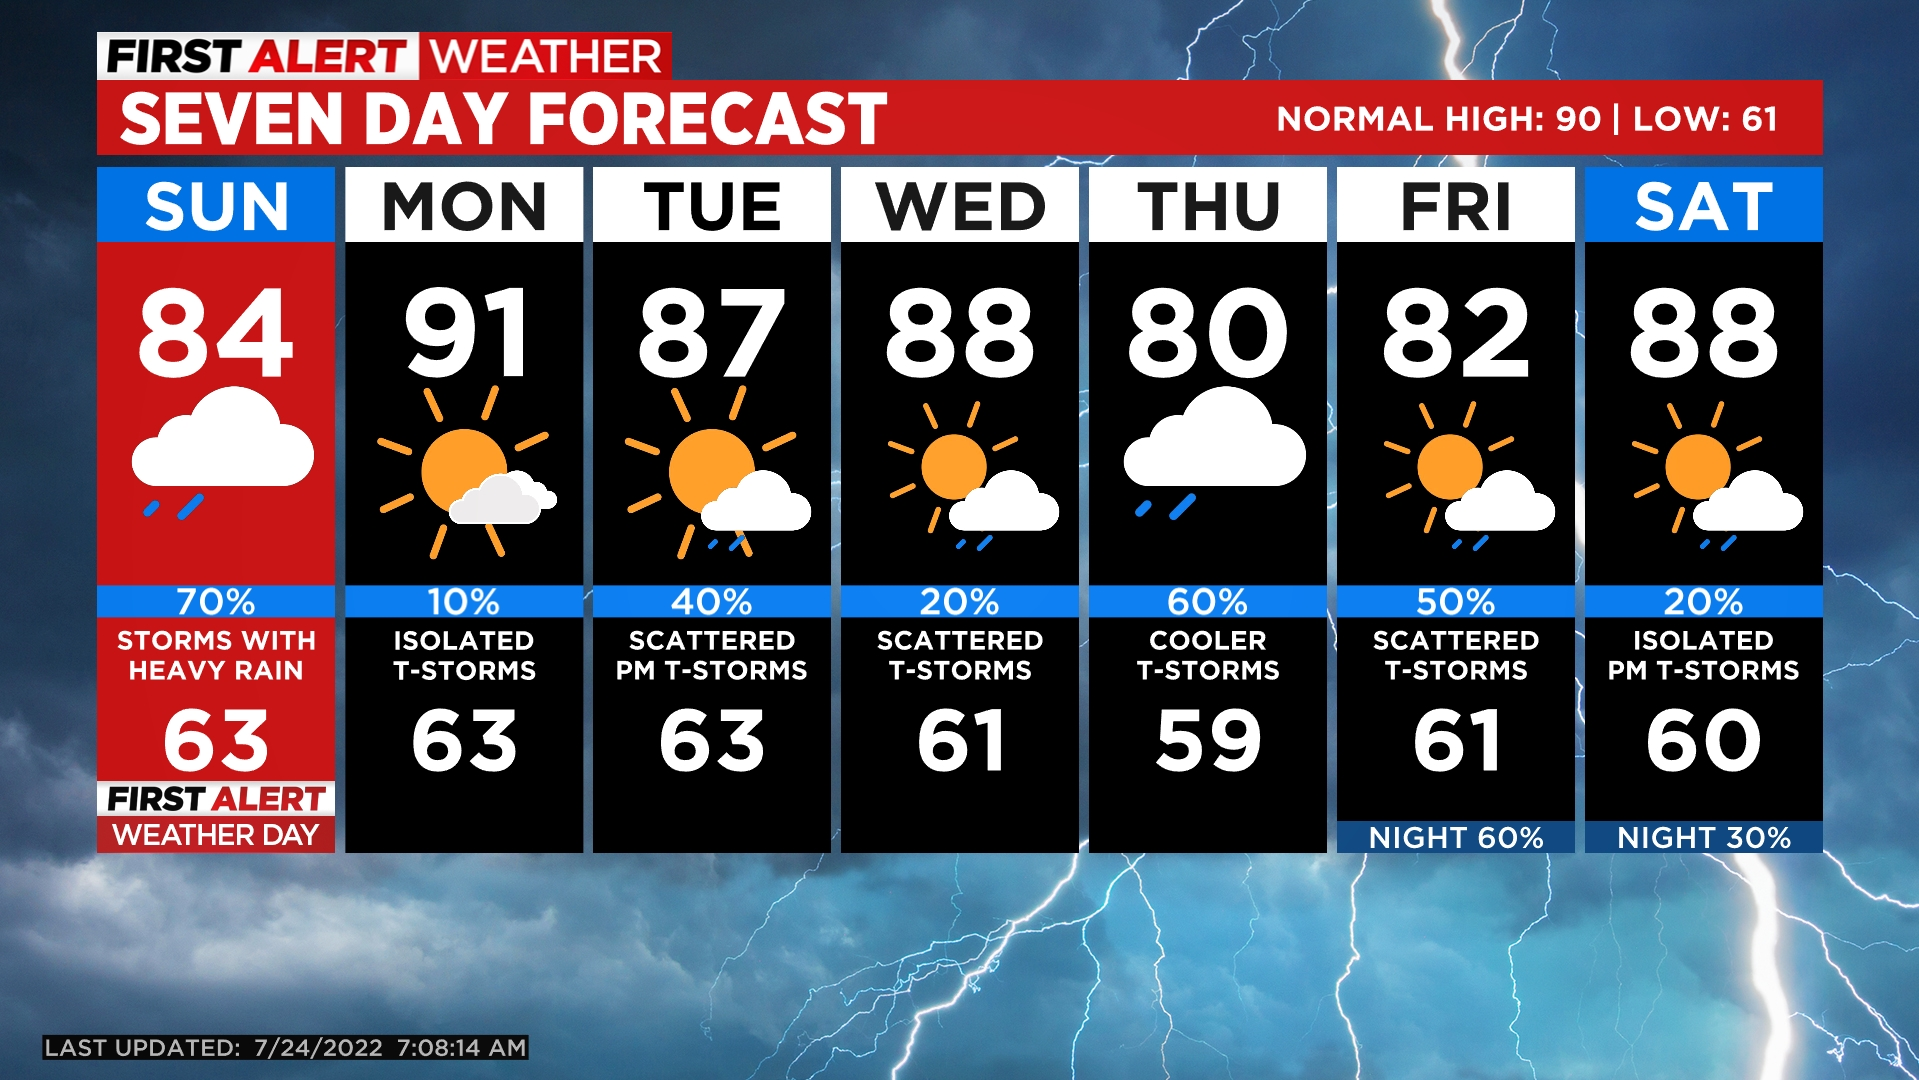 5day Few Cool Days Ahead Before Warming Trend